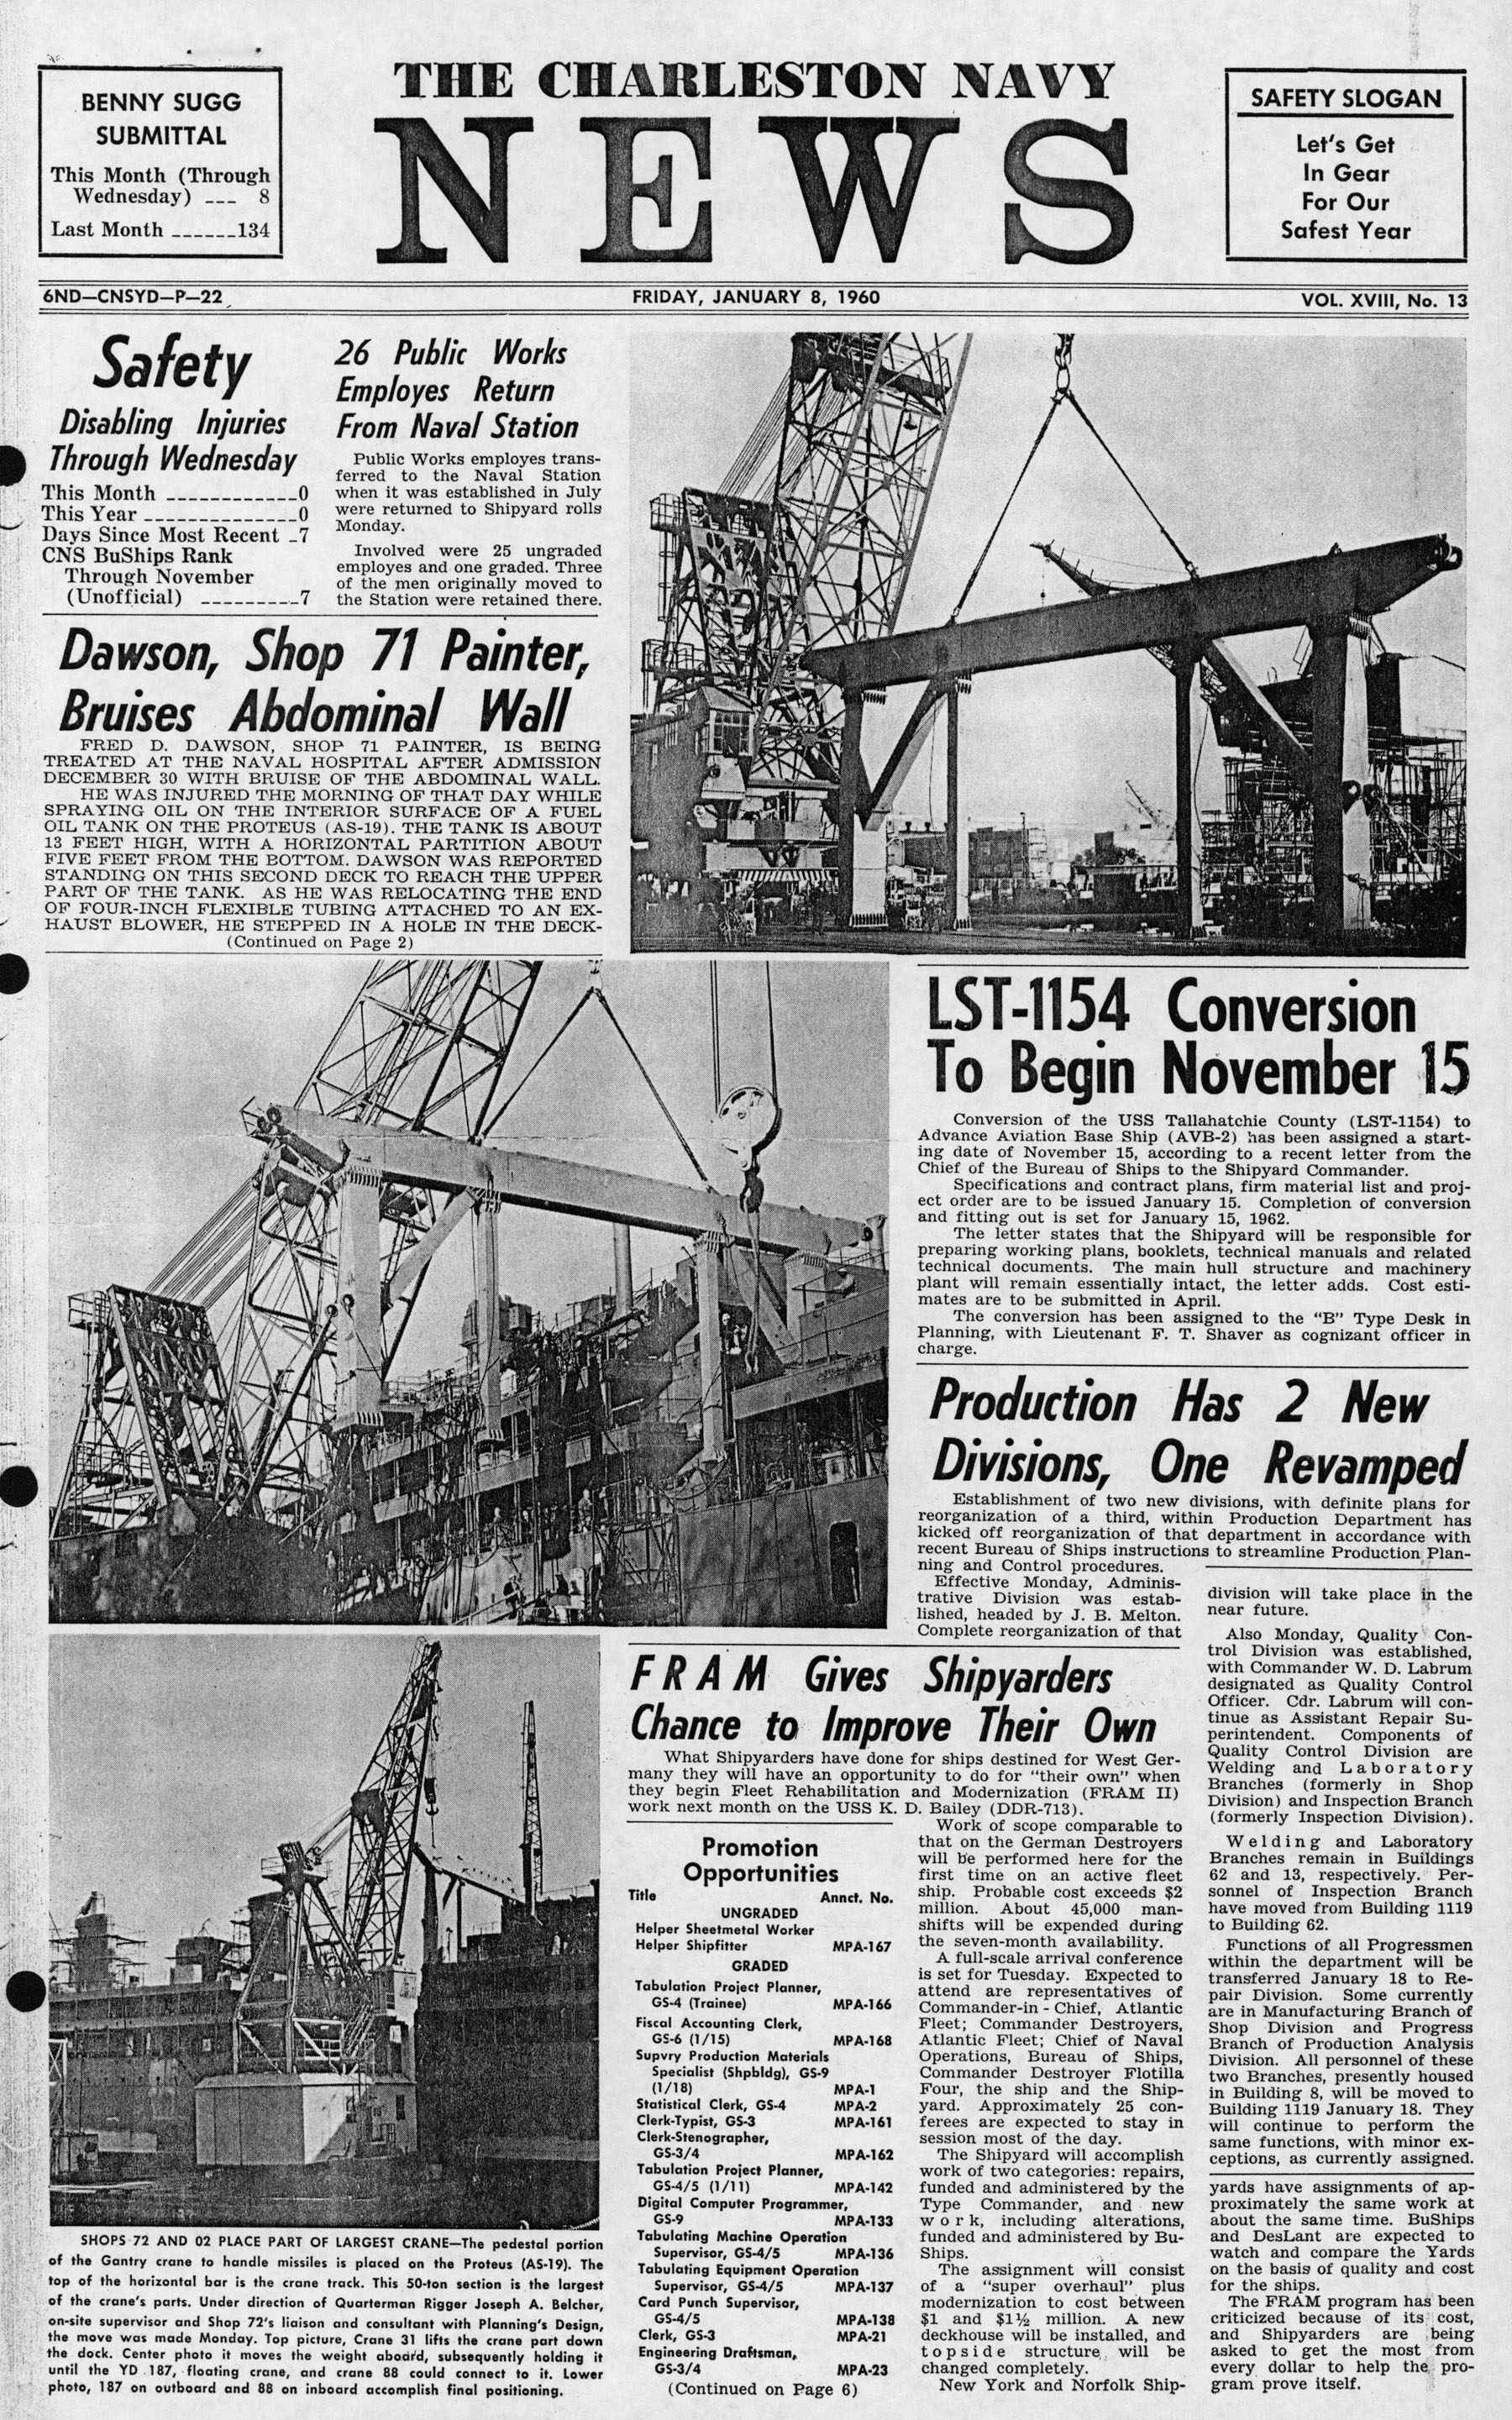 Patriots Point Shipyard Newsletters, Book 18